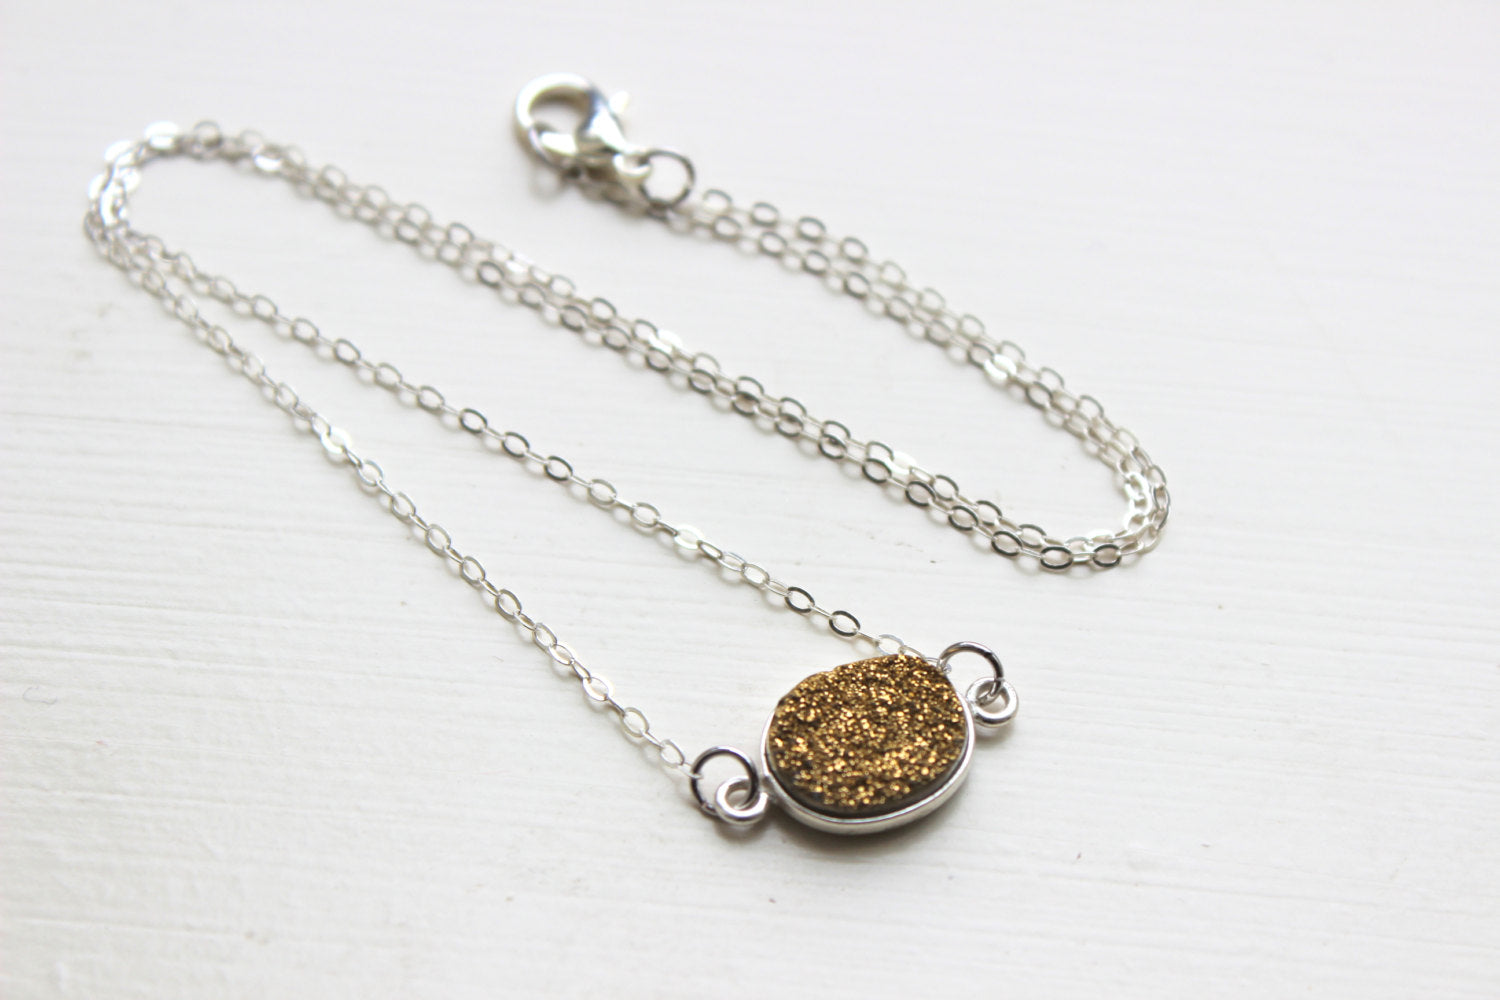 Silver Gold Druzy Necklace Natural Druzy Jewelry Gold Drusy Necklace Jewelry Druzy Christmas Gift Under 20 Necklace Silver Statement Jewelry